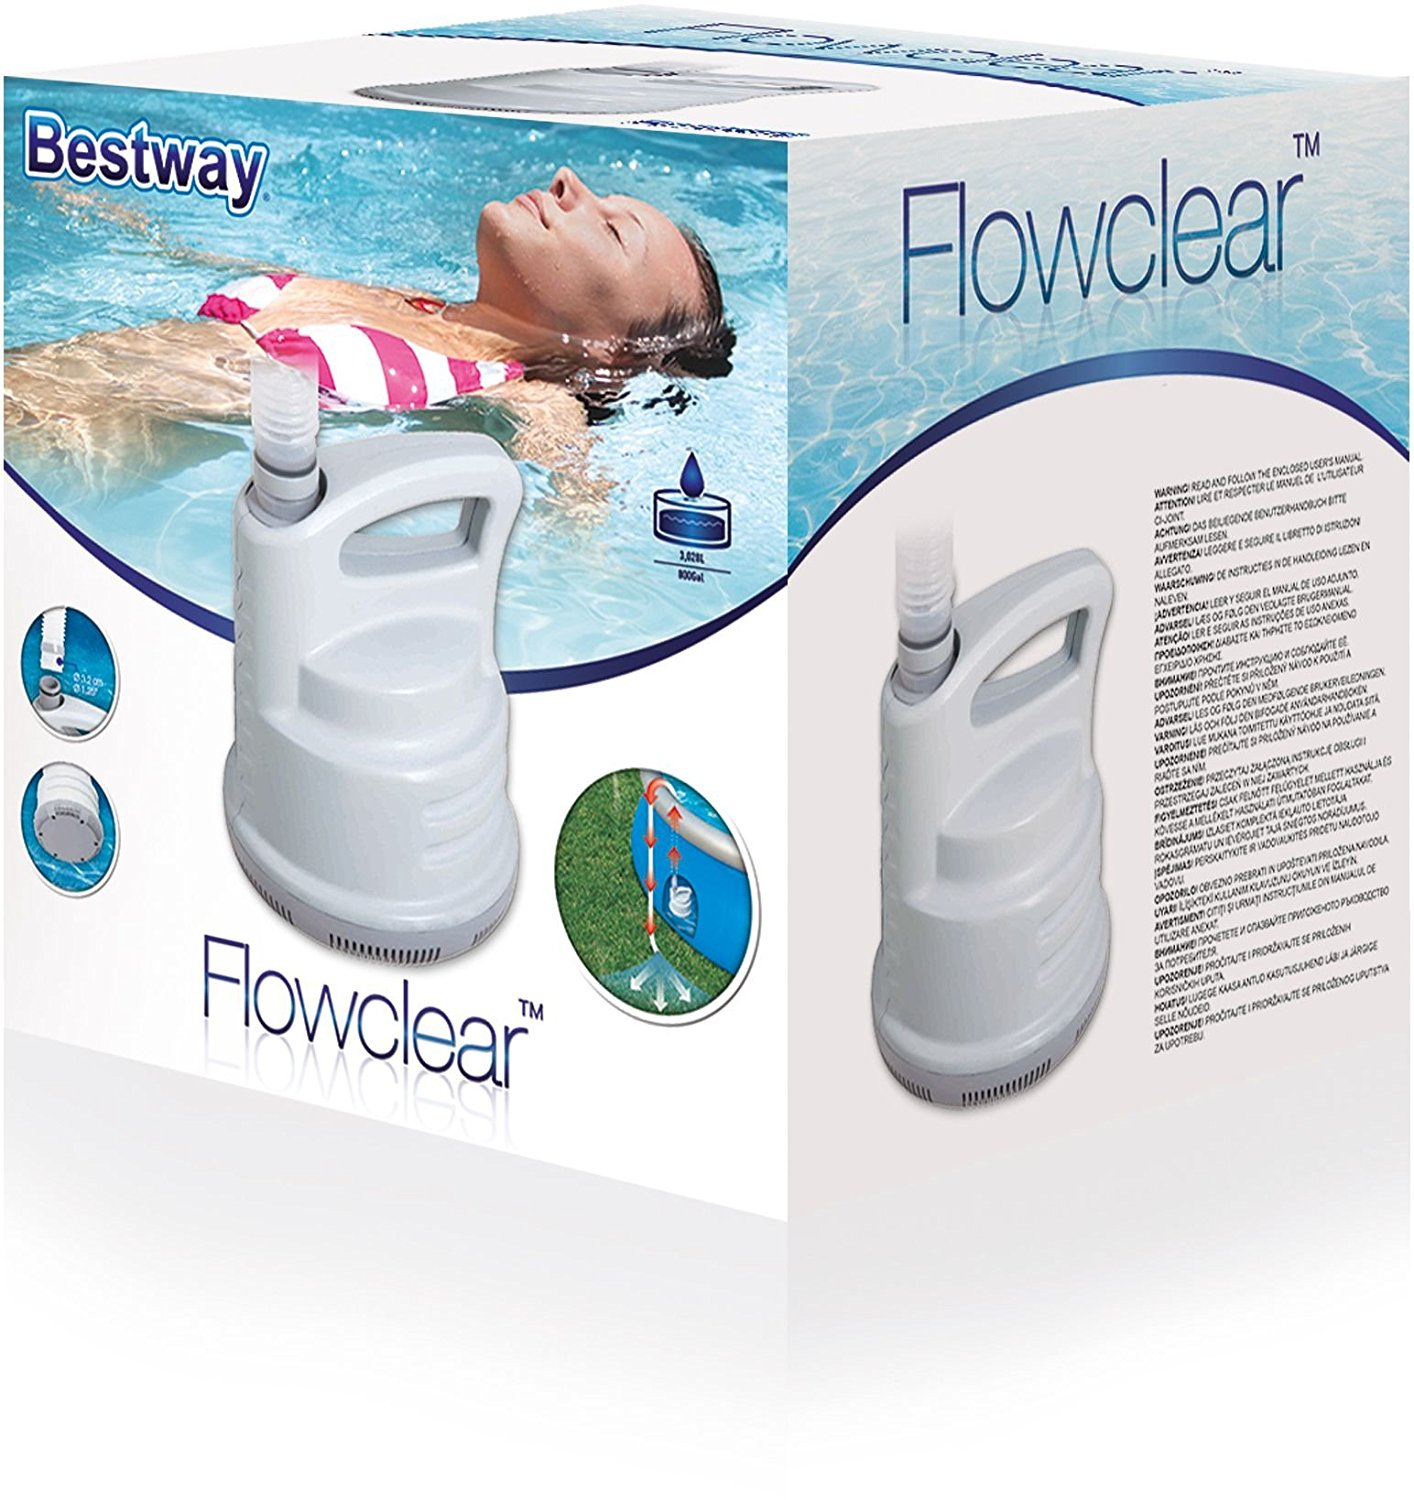 New bestway electric swimming pool drain and pump long water hose for How to empty a swimming pool without a pump